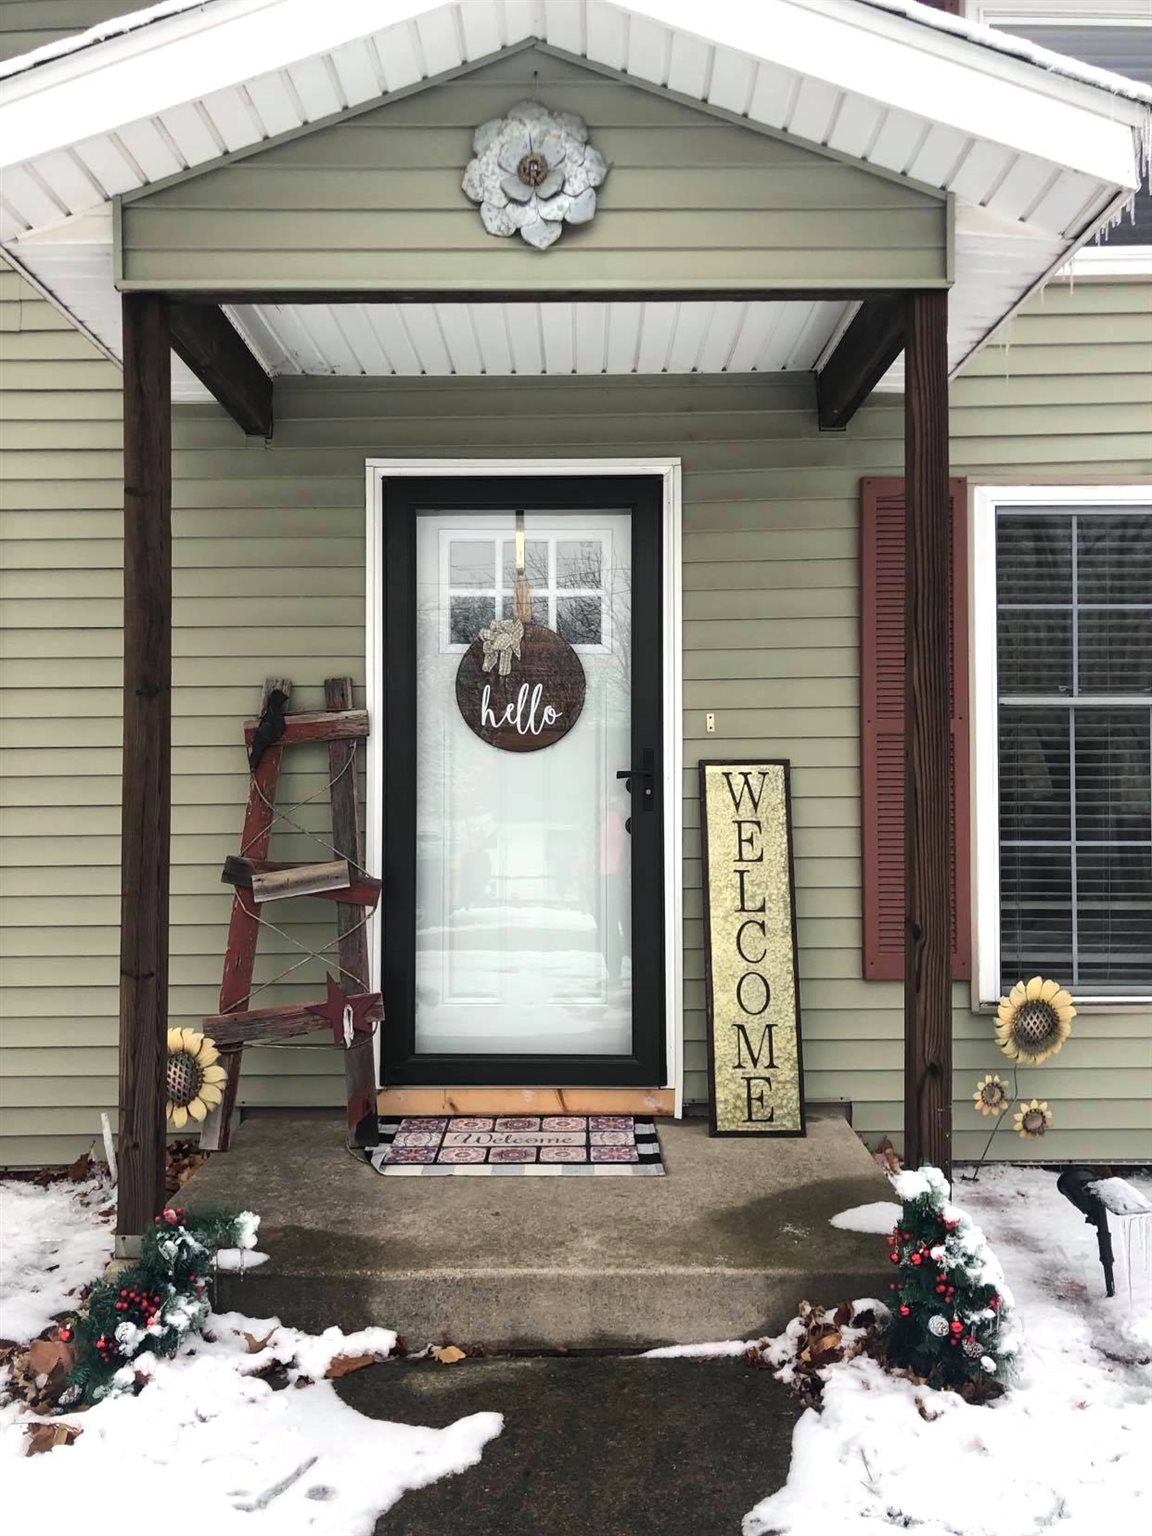 321 N THIRD Property Photo - Hanna City, IL real estate listing